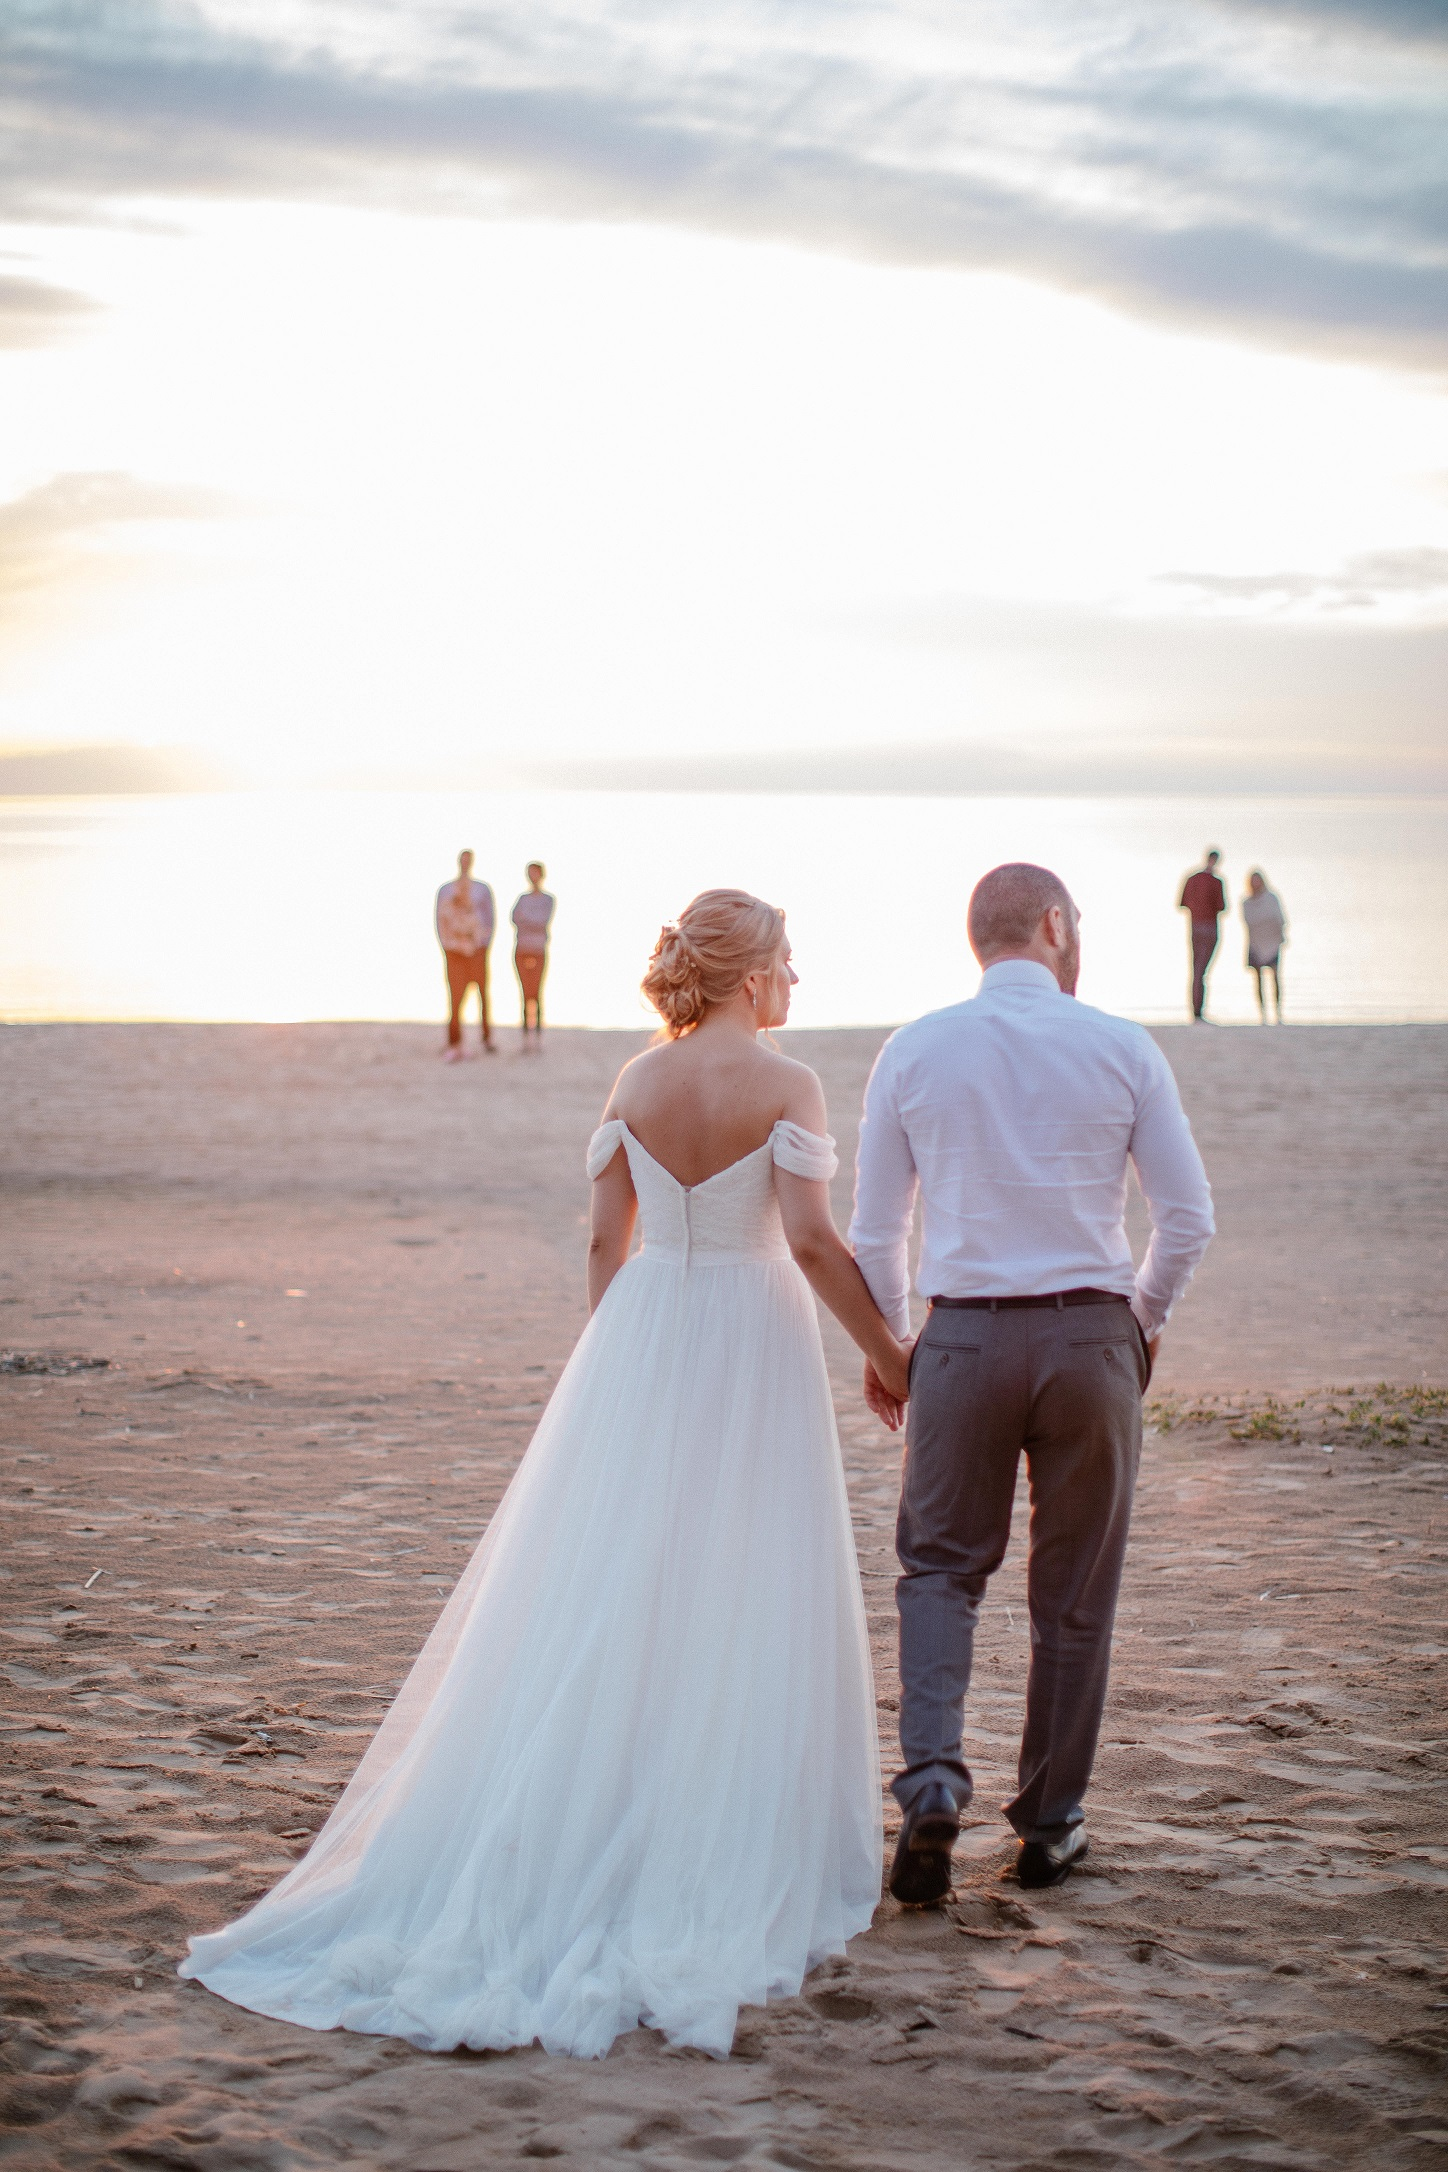 Bride Anna and Groom Levan hold hands on the beach at sunset